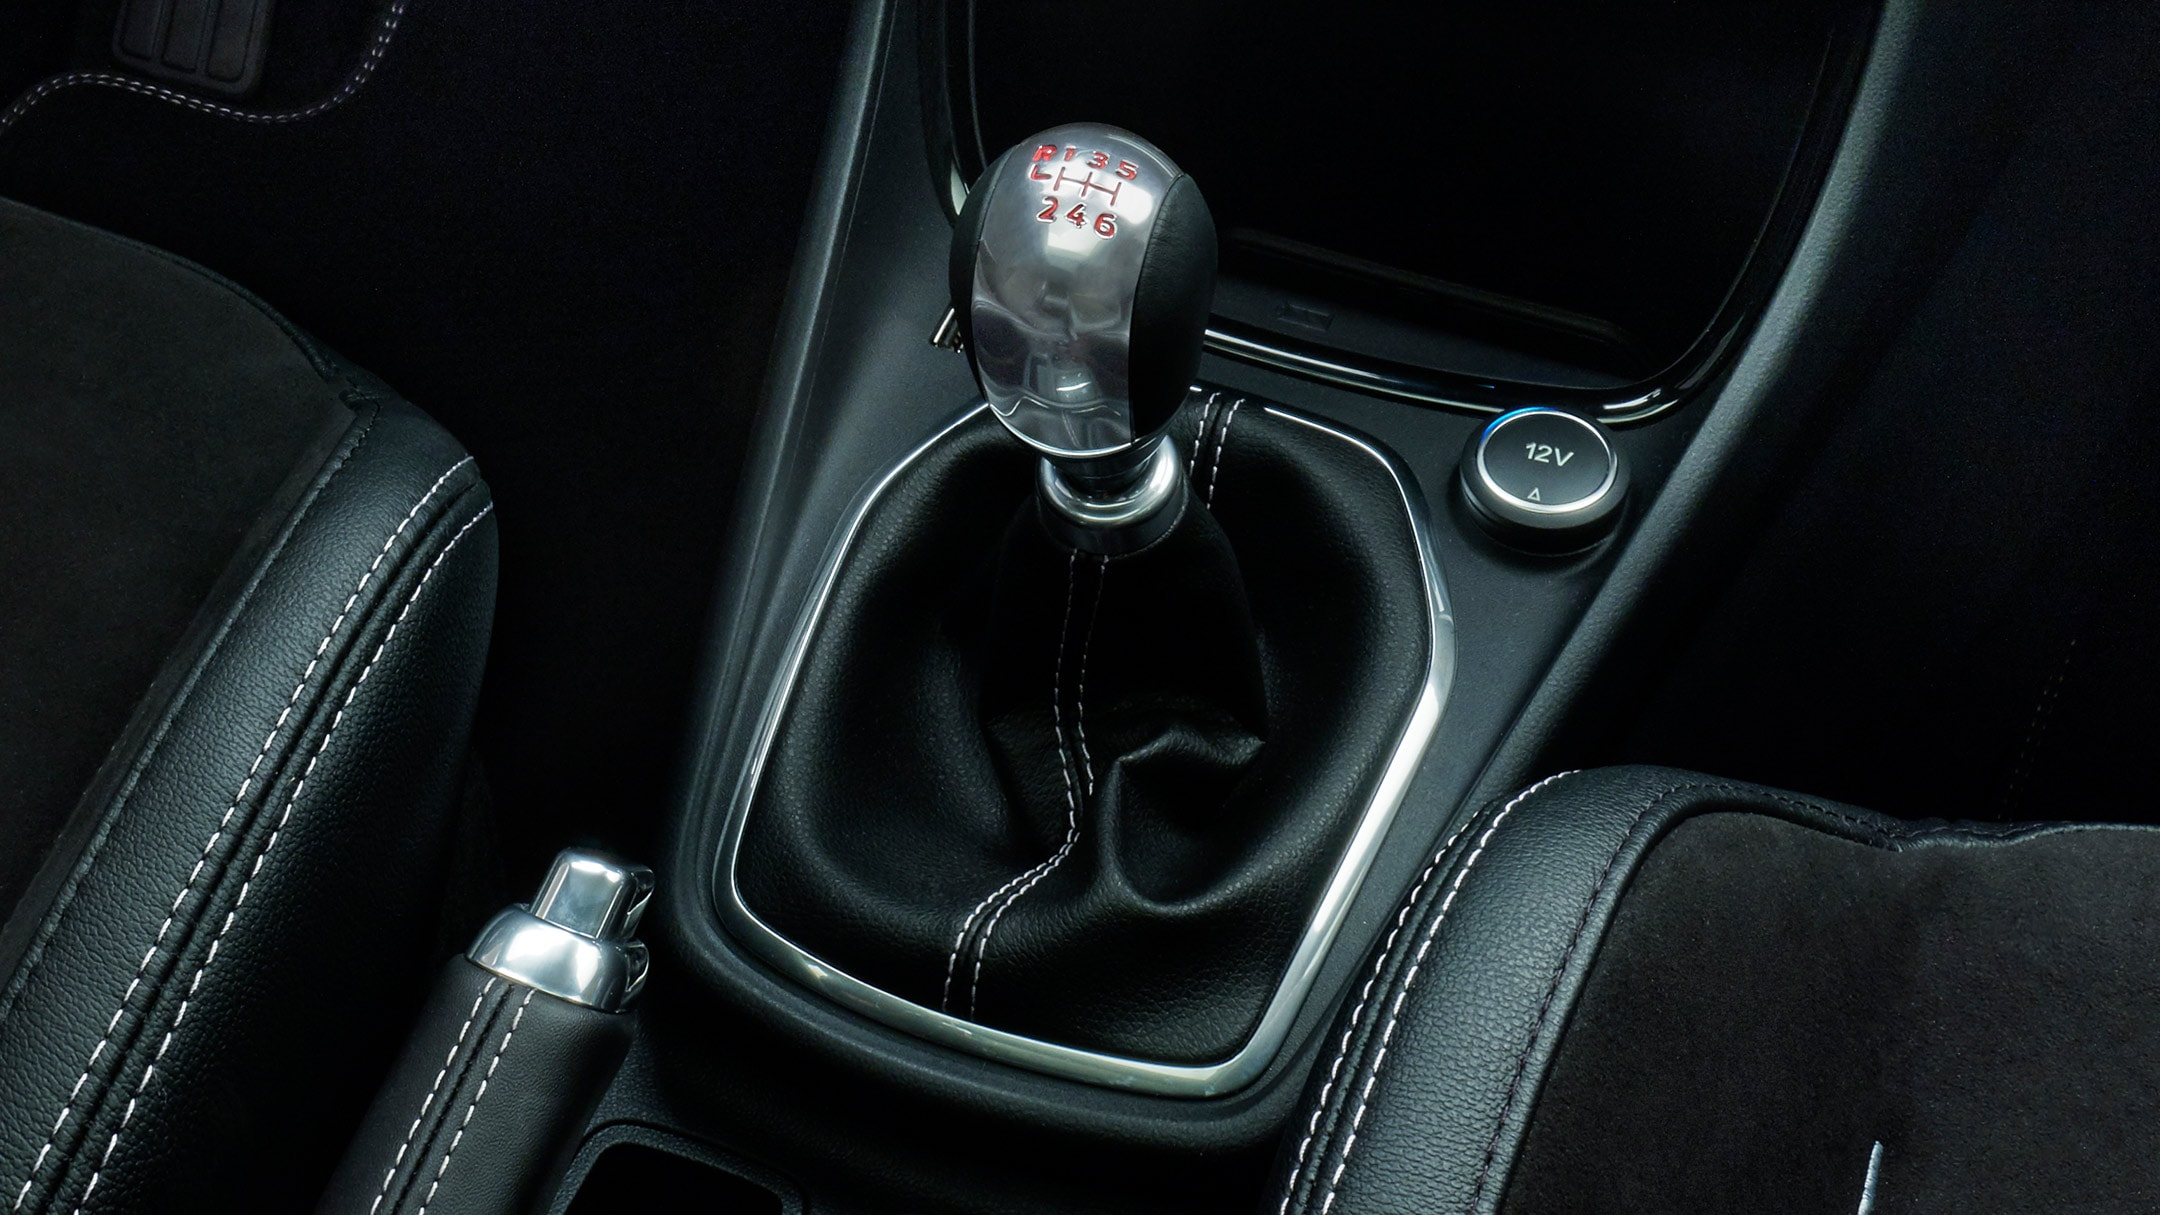 Ford Puma ST manual gear stick close up